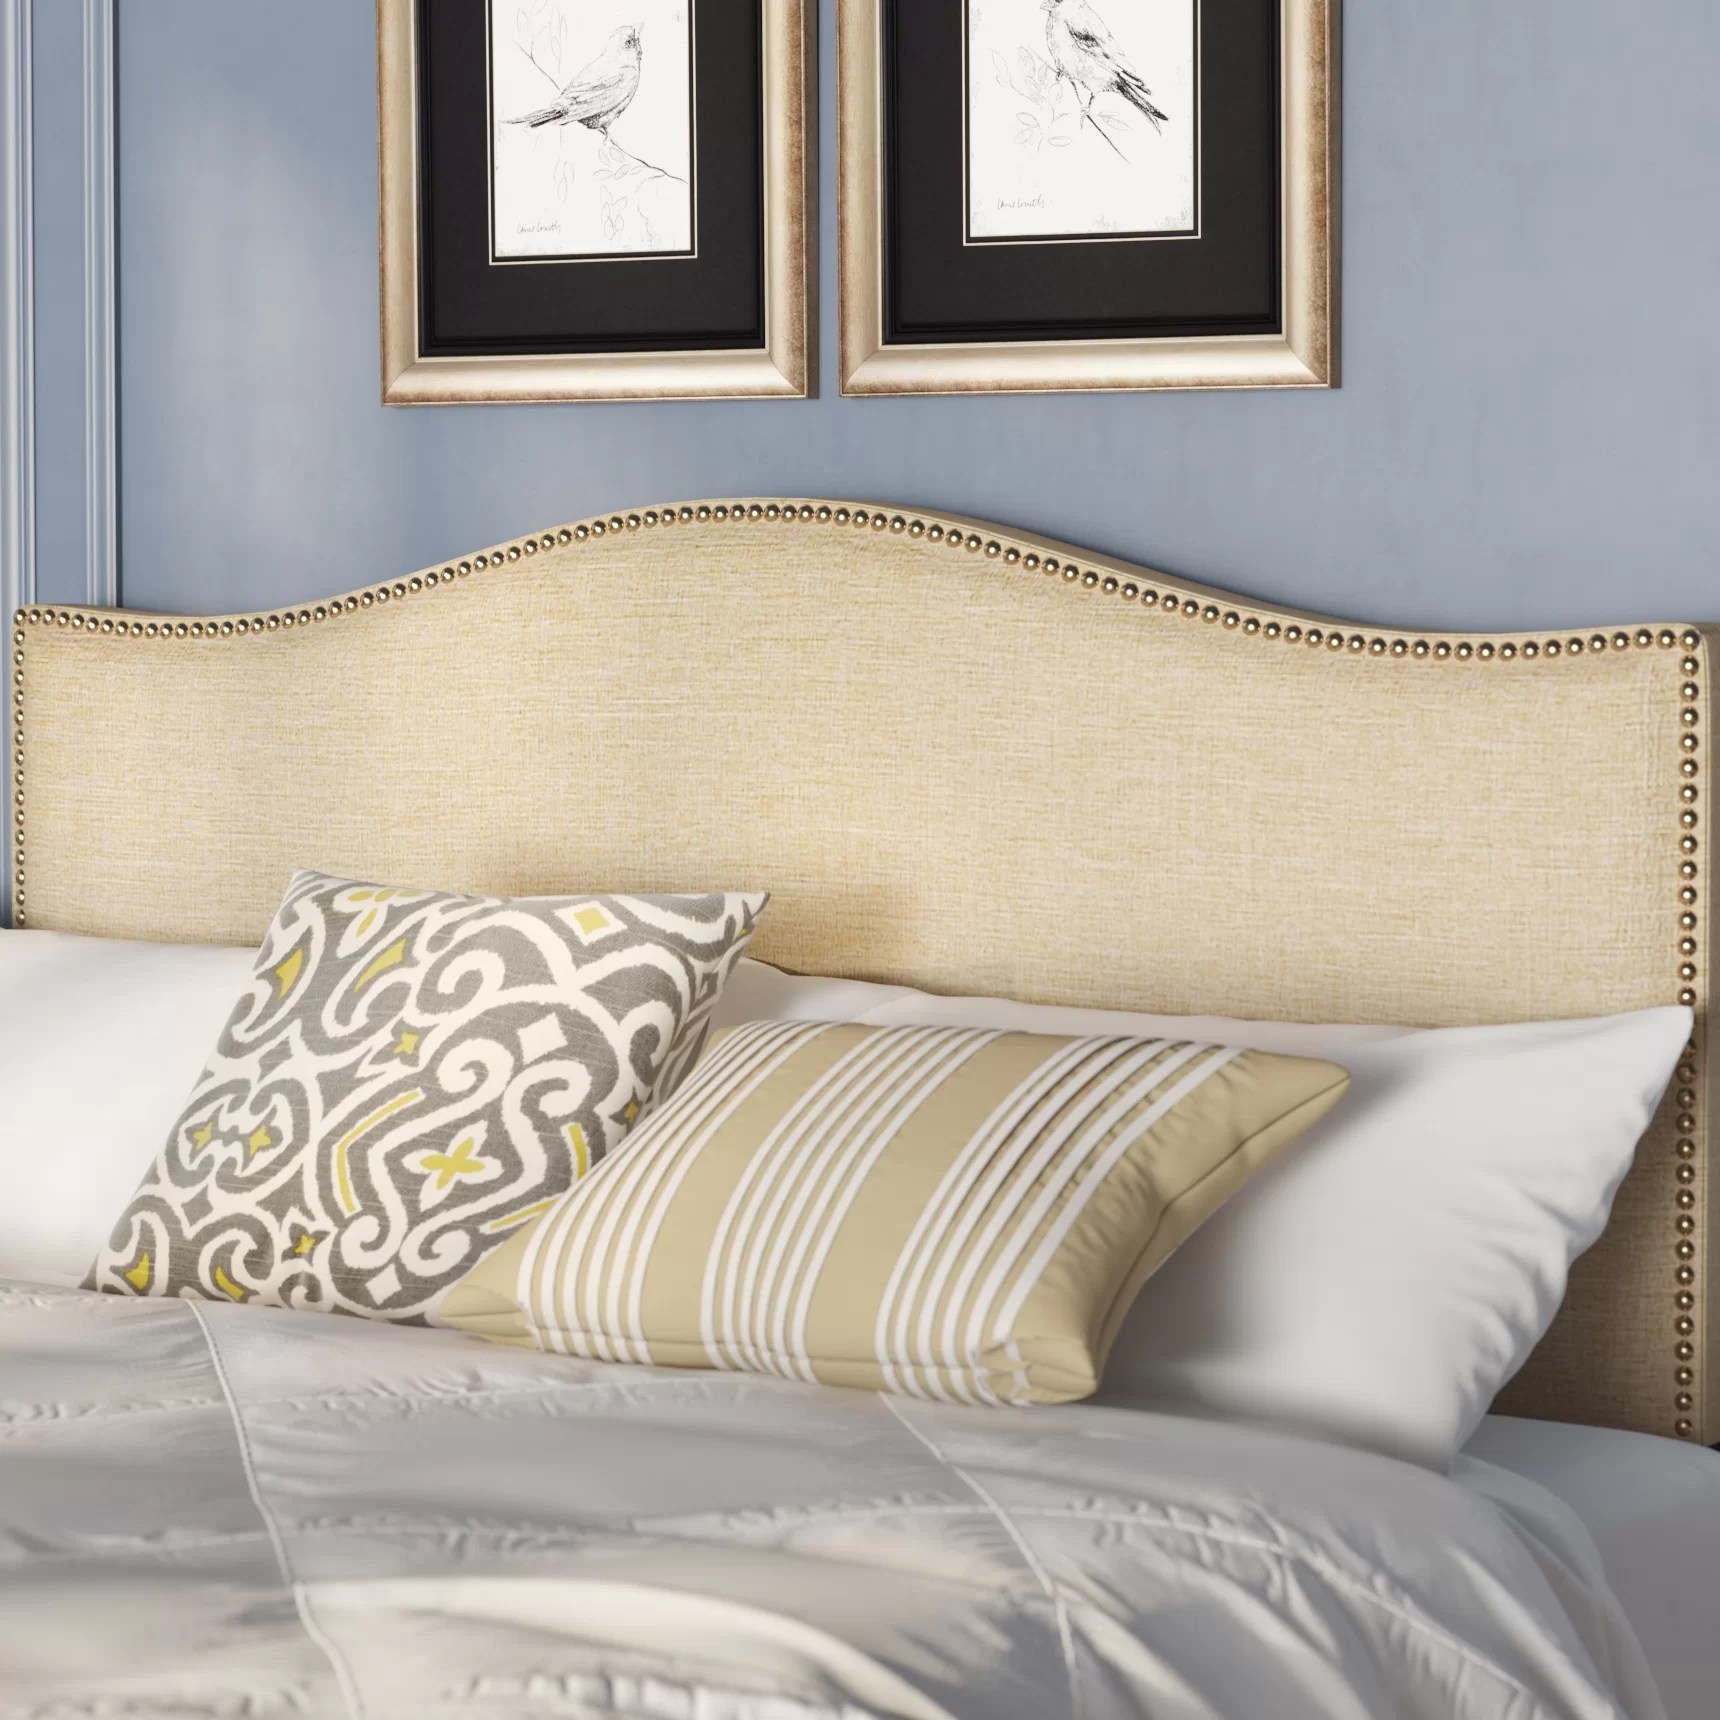 Charlton Home Bransford Curl Upholstered Headboard   Reviews   Wayfair